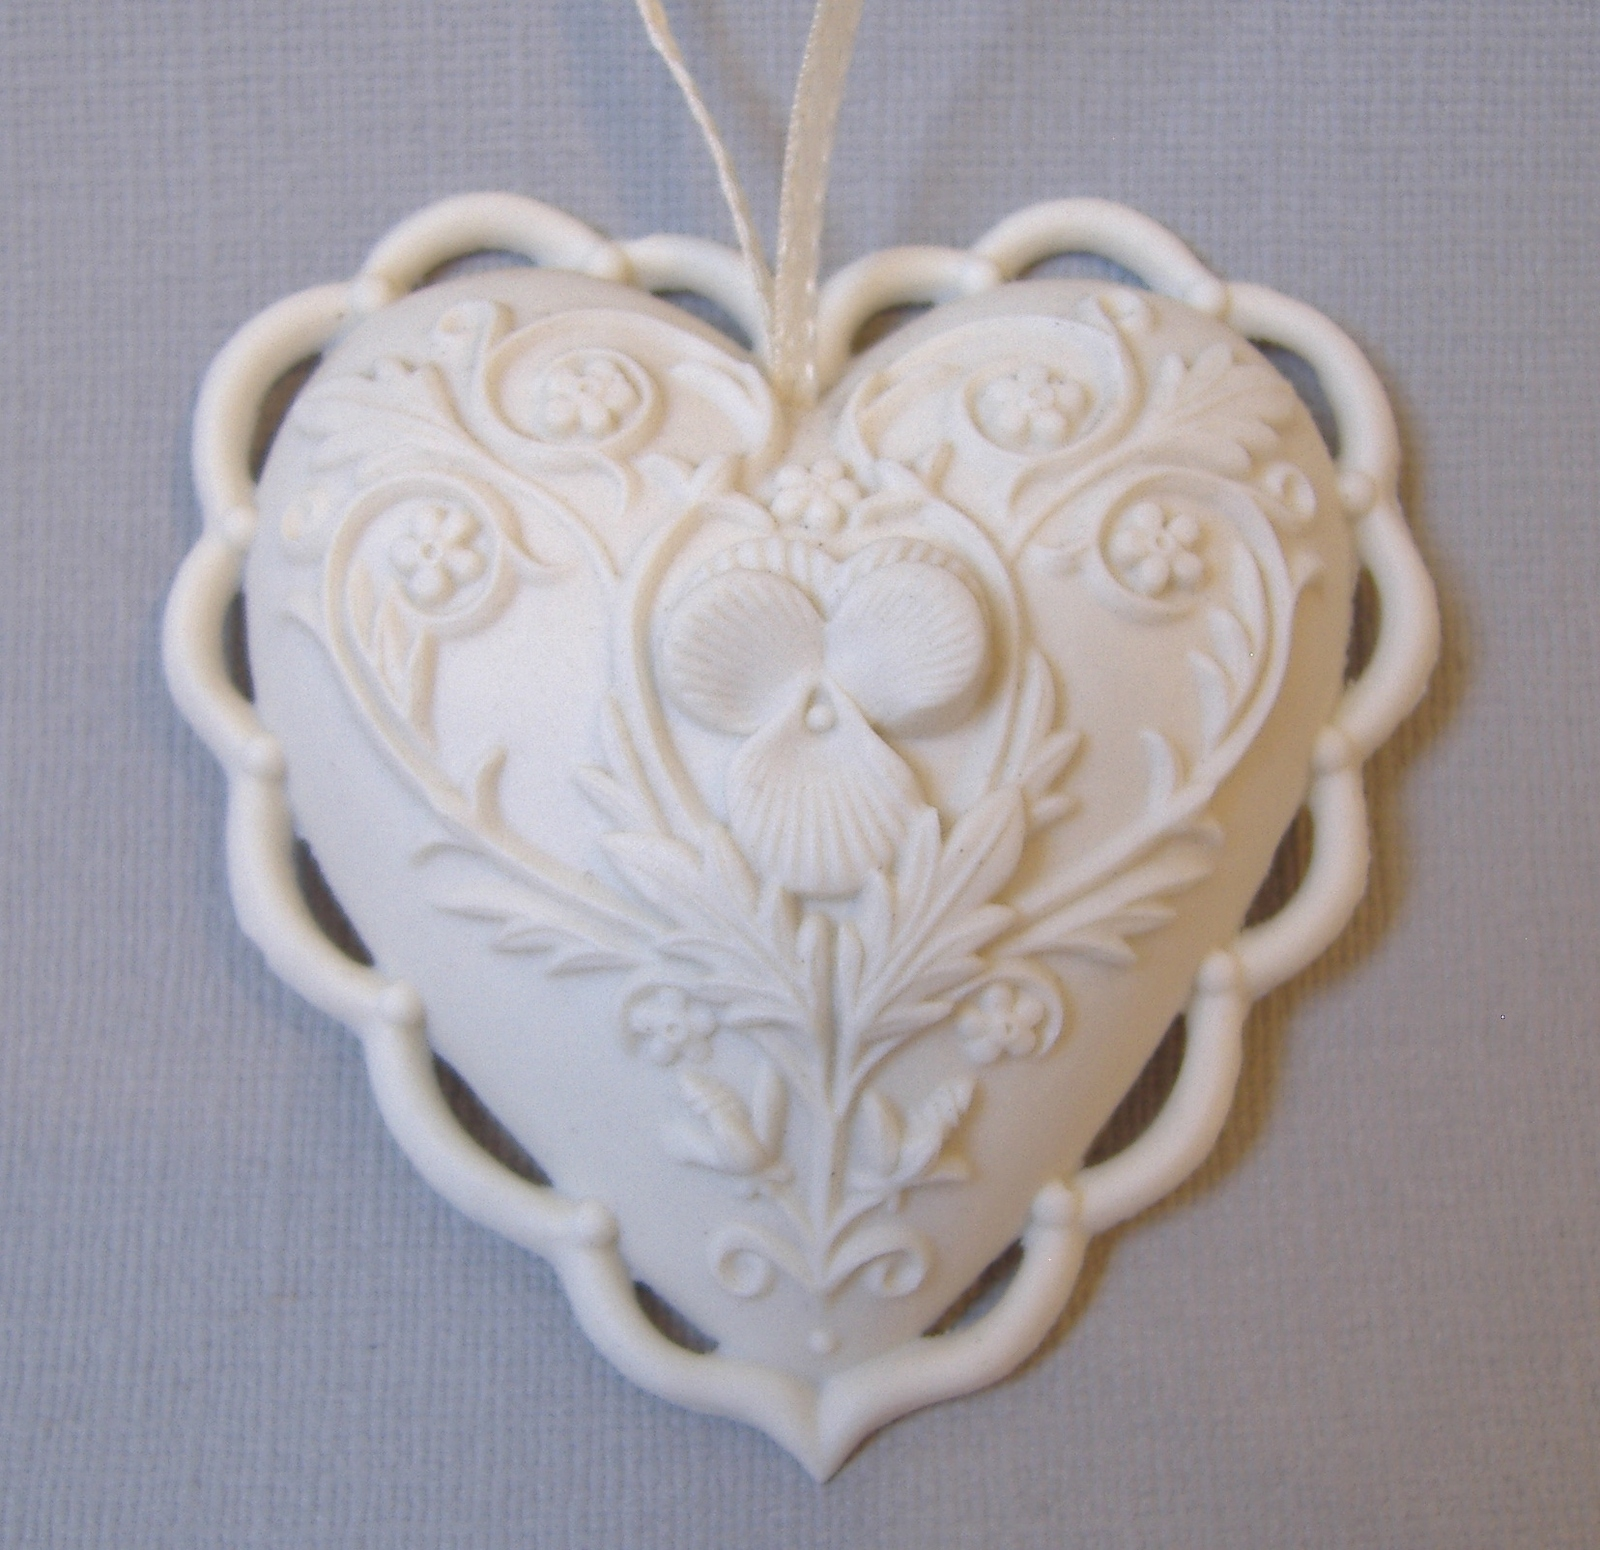 Primary image for From The Heart Margaret Furlong 1997 Ornate White Porcelain Victorian Ornament